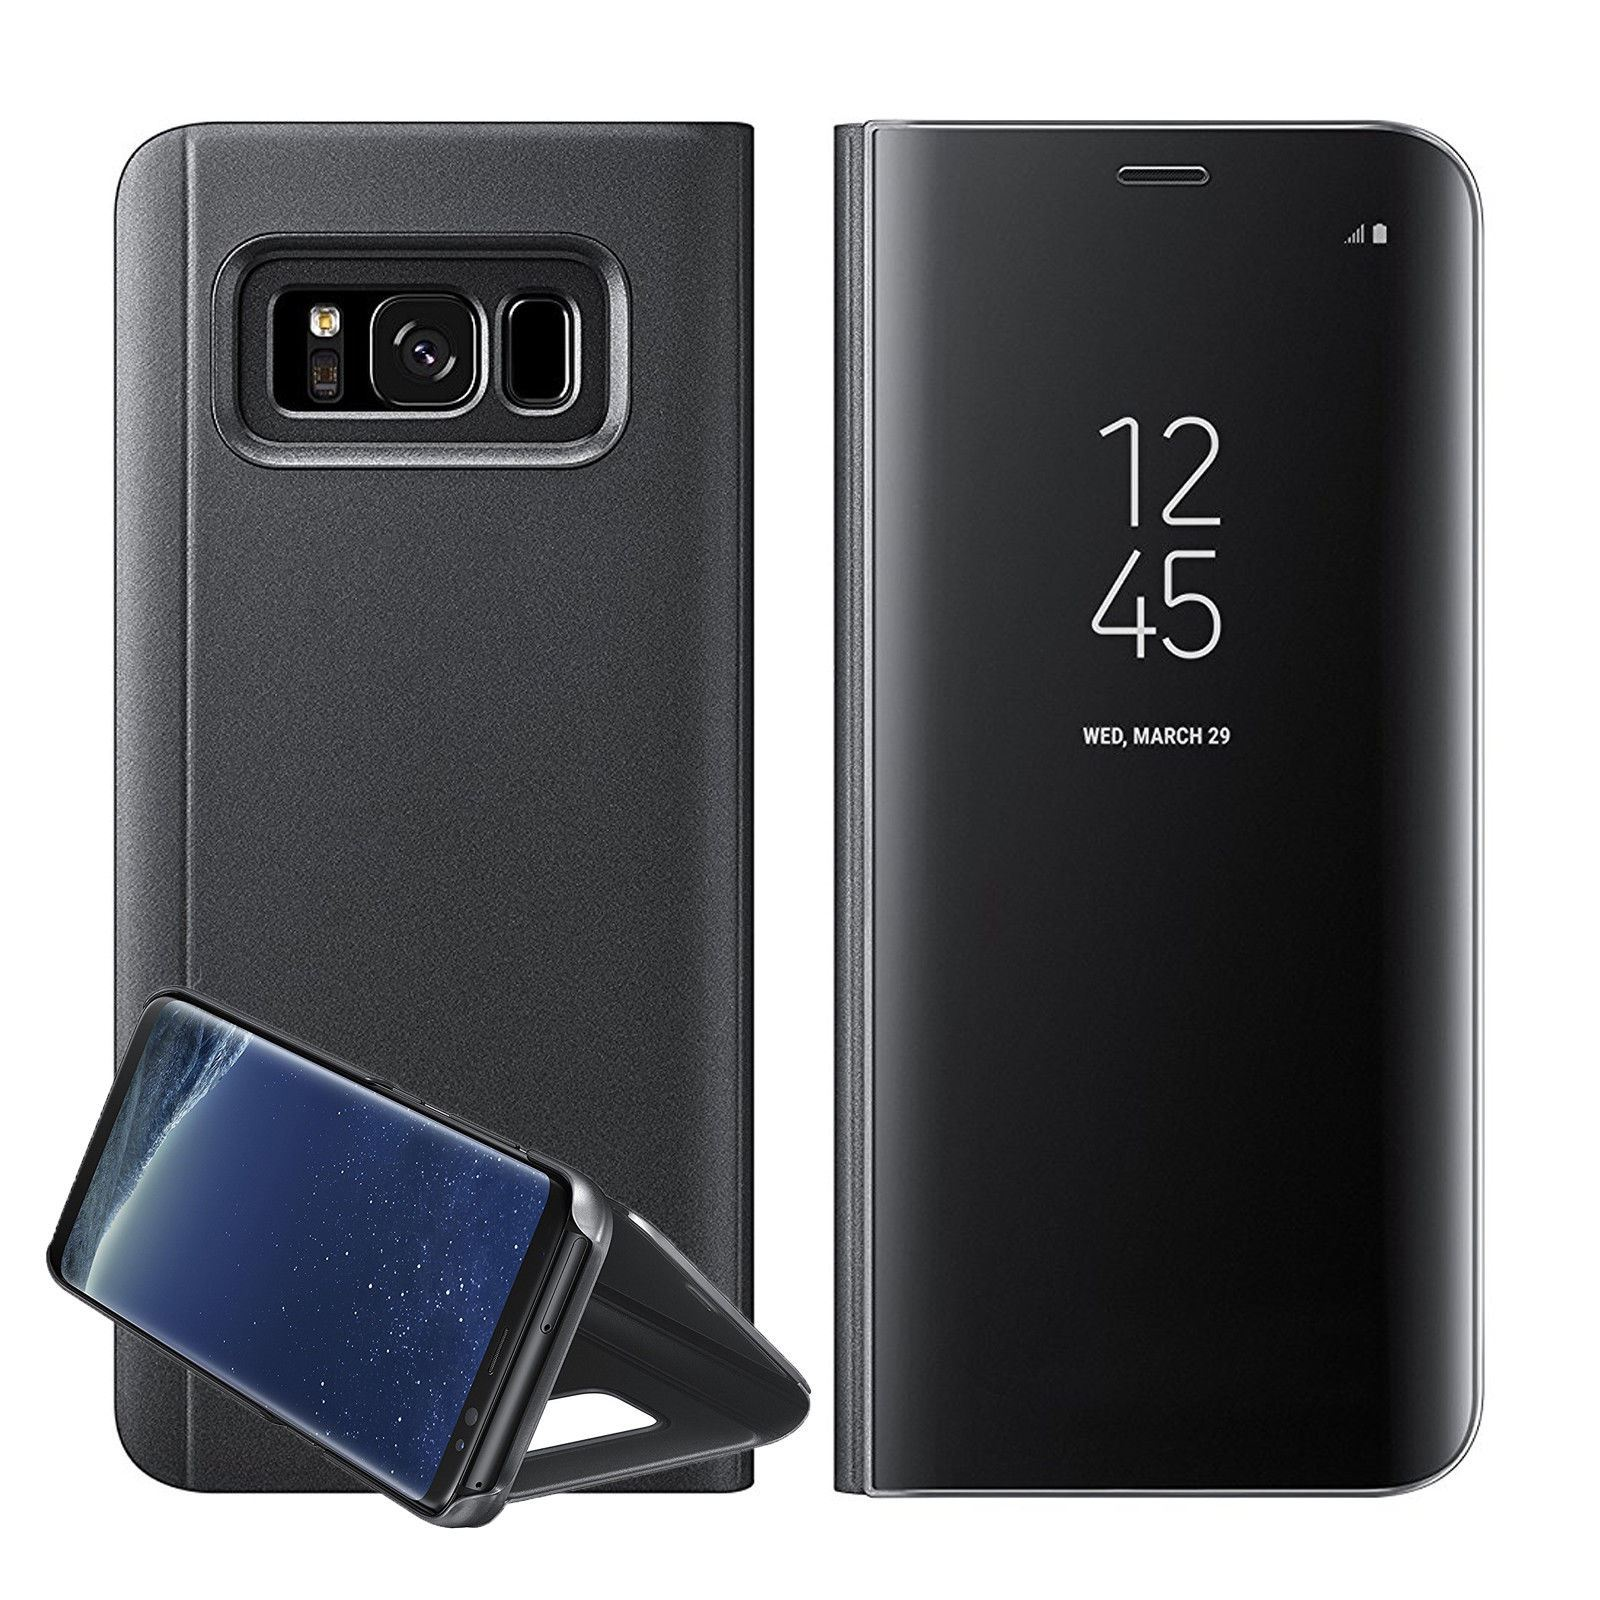 New-Samsung-Galaxy-S8-S9-S10-Smart-View-Mirror-Leather-Flip-Stand-Case-Cover miniatura 18